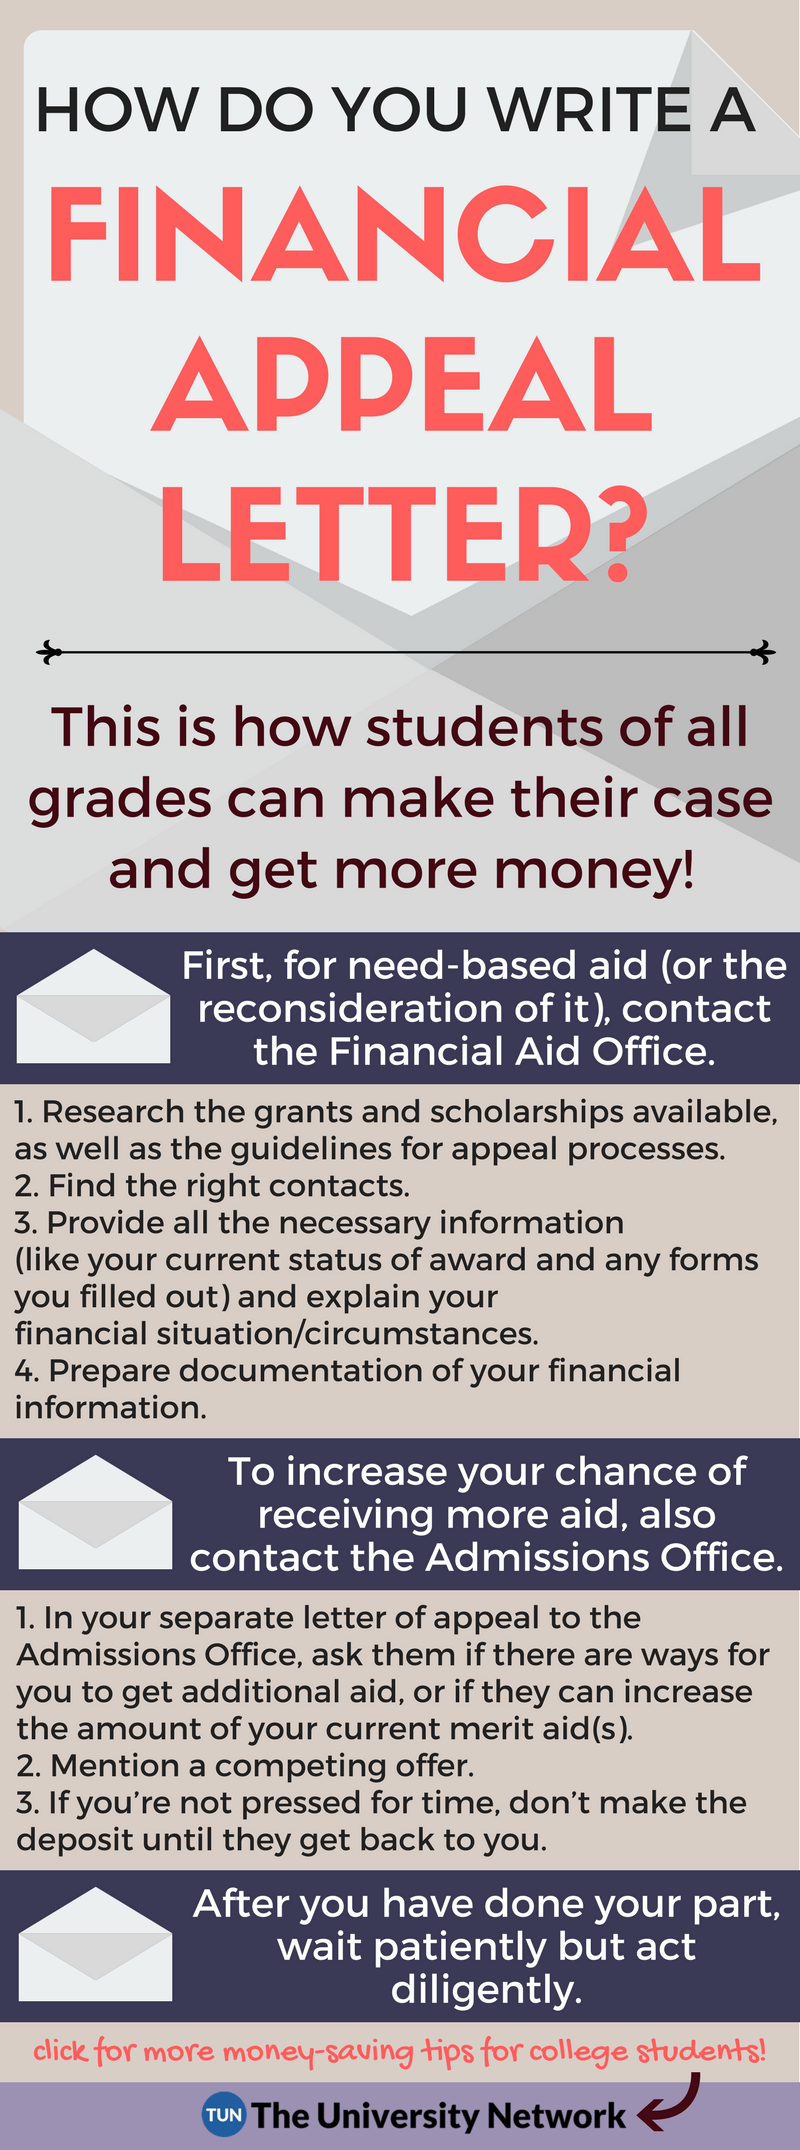 Academic Appeal Letter Delectable Financial Aid Appeal How To Make Your Case And Get More Money .